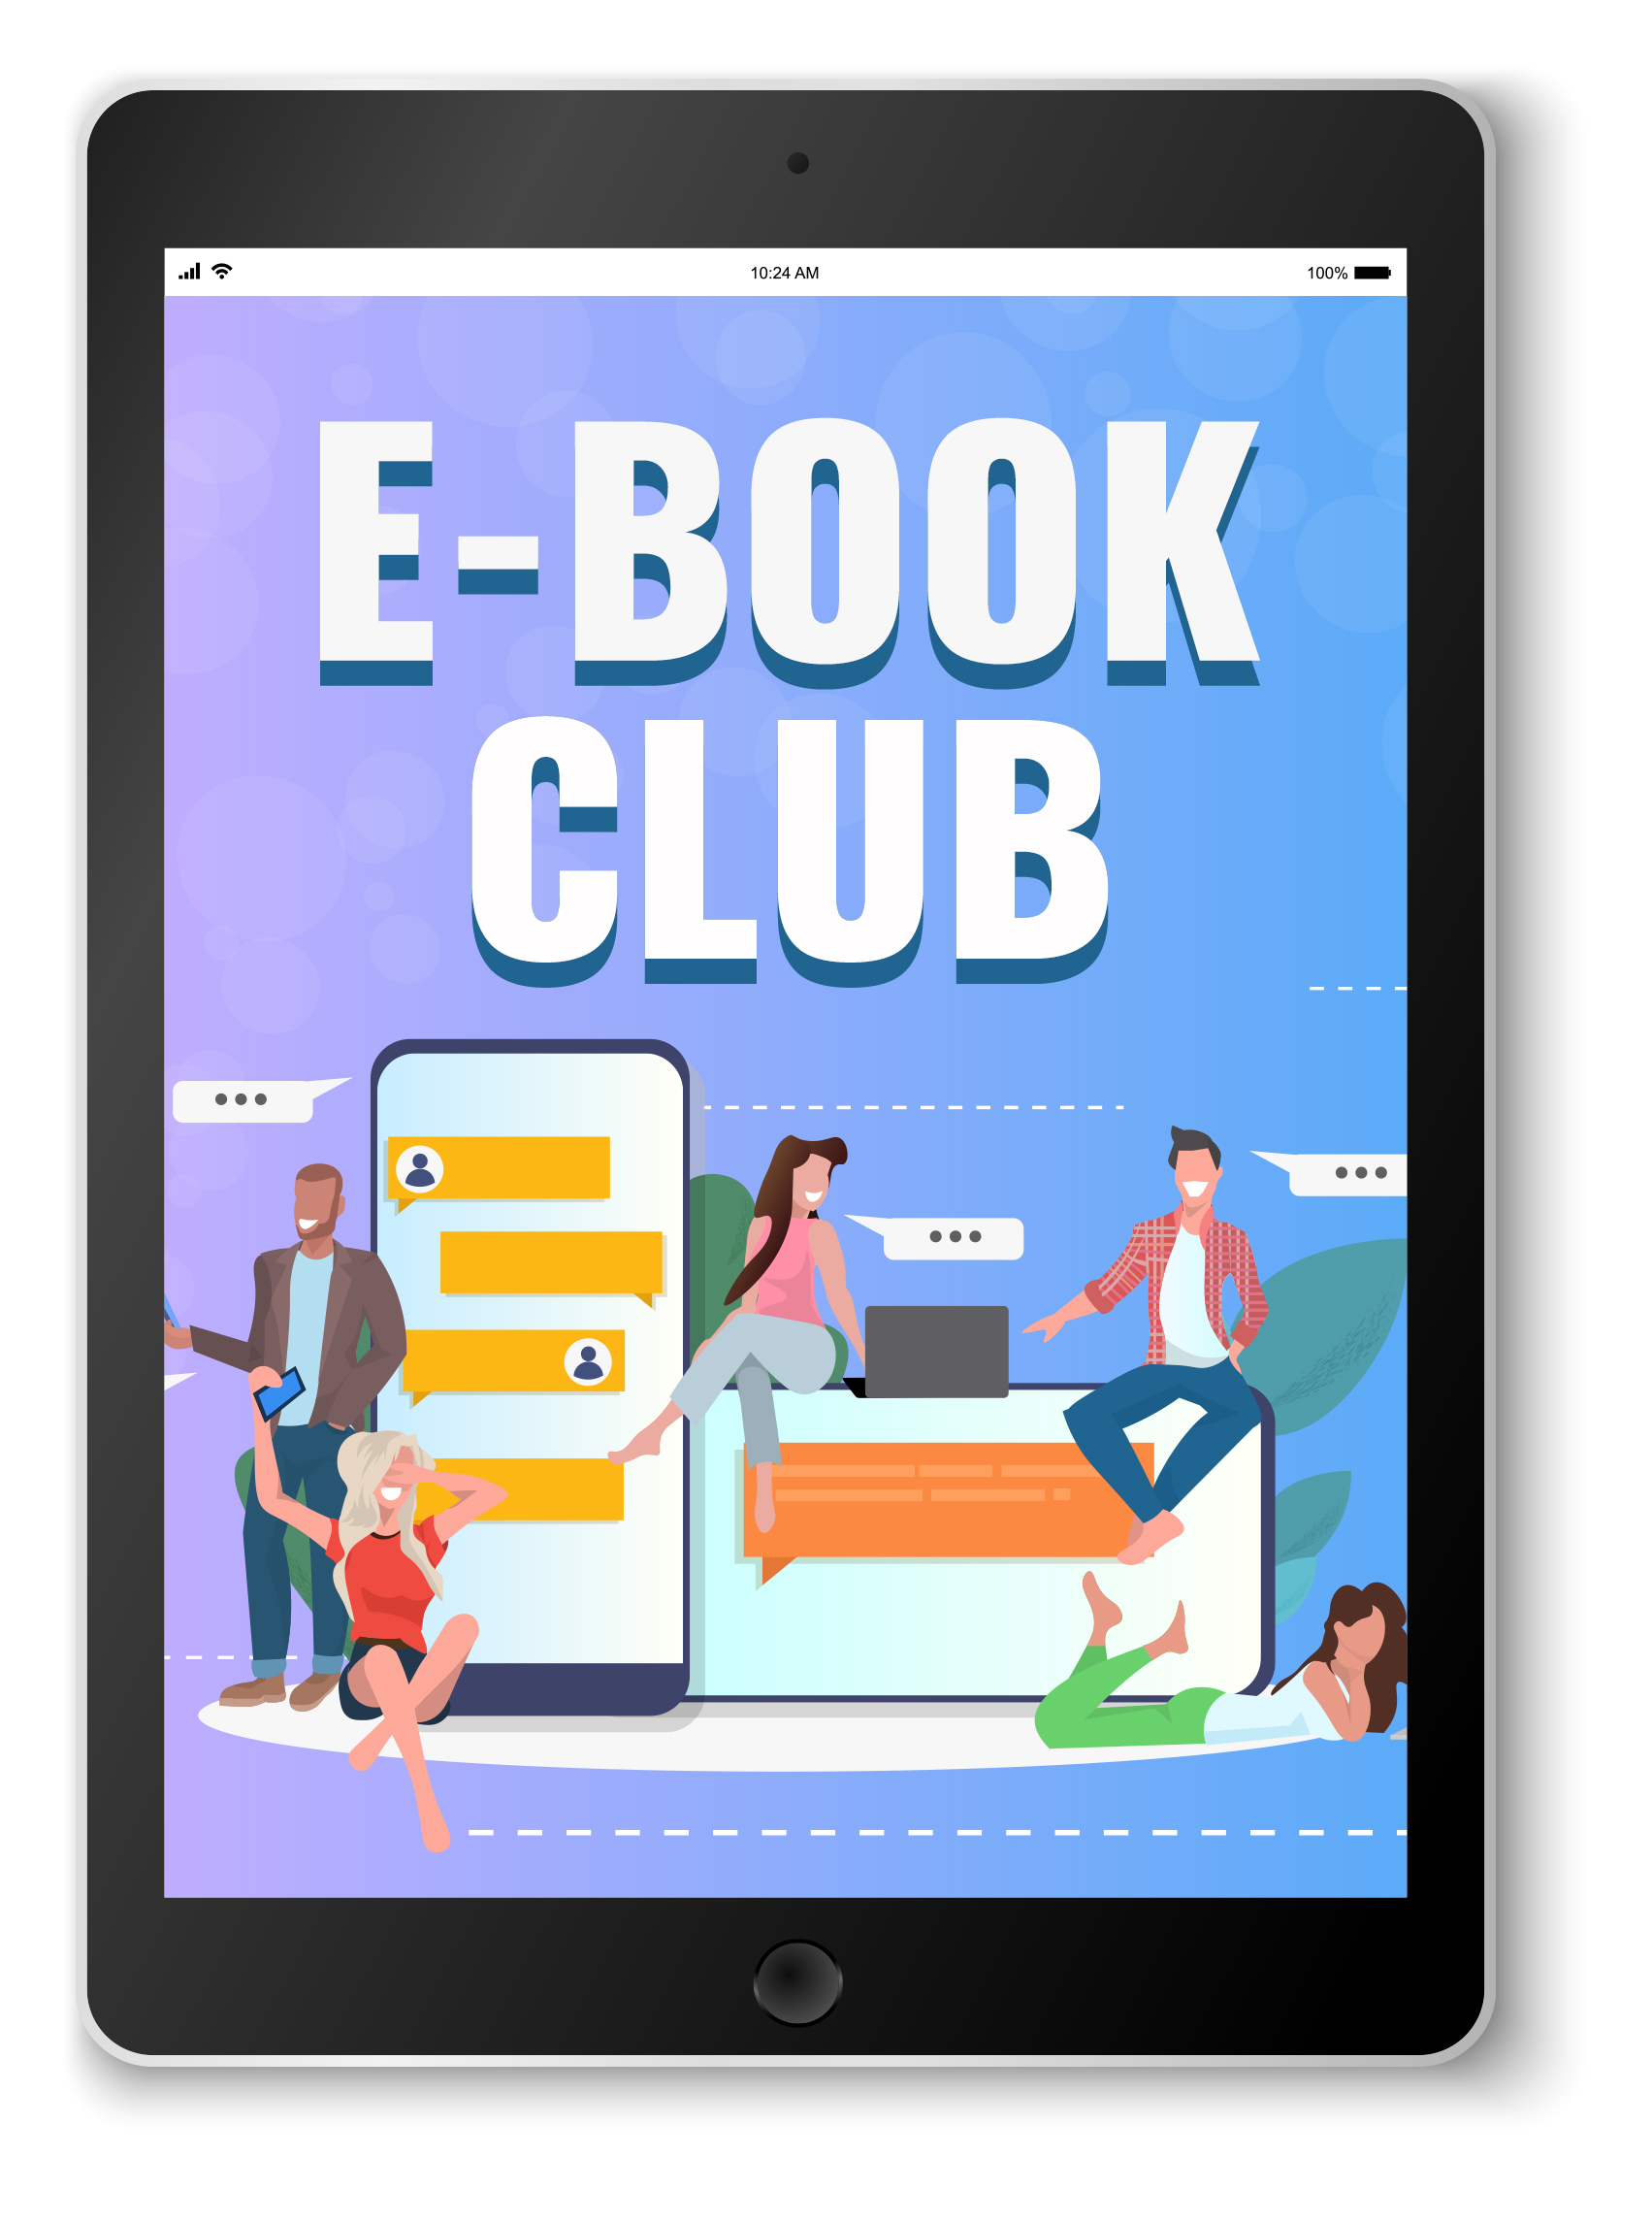 Visit the e-book club list for your book club.